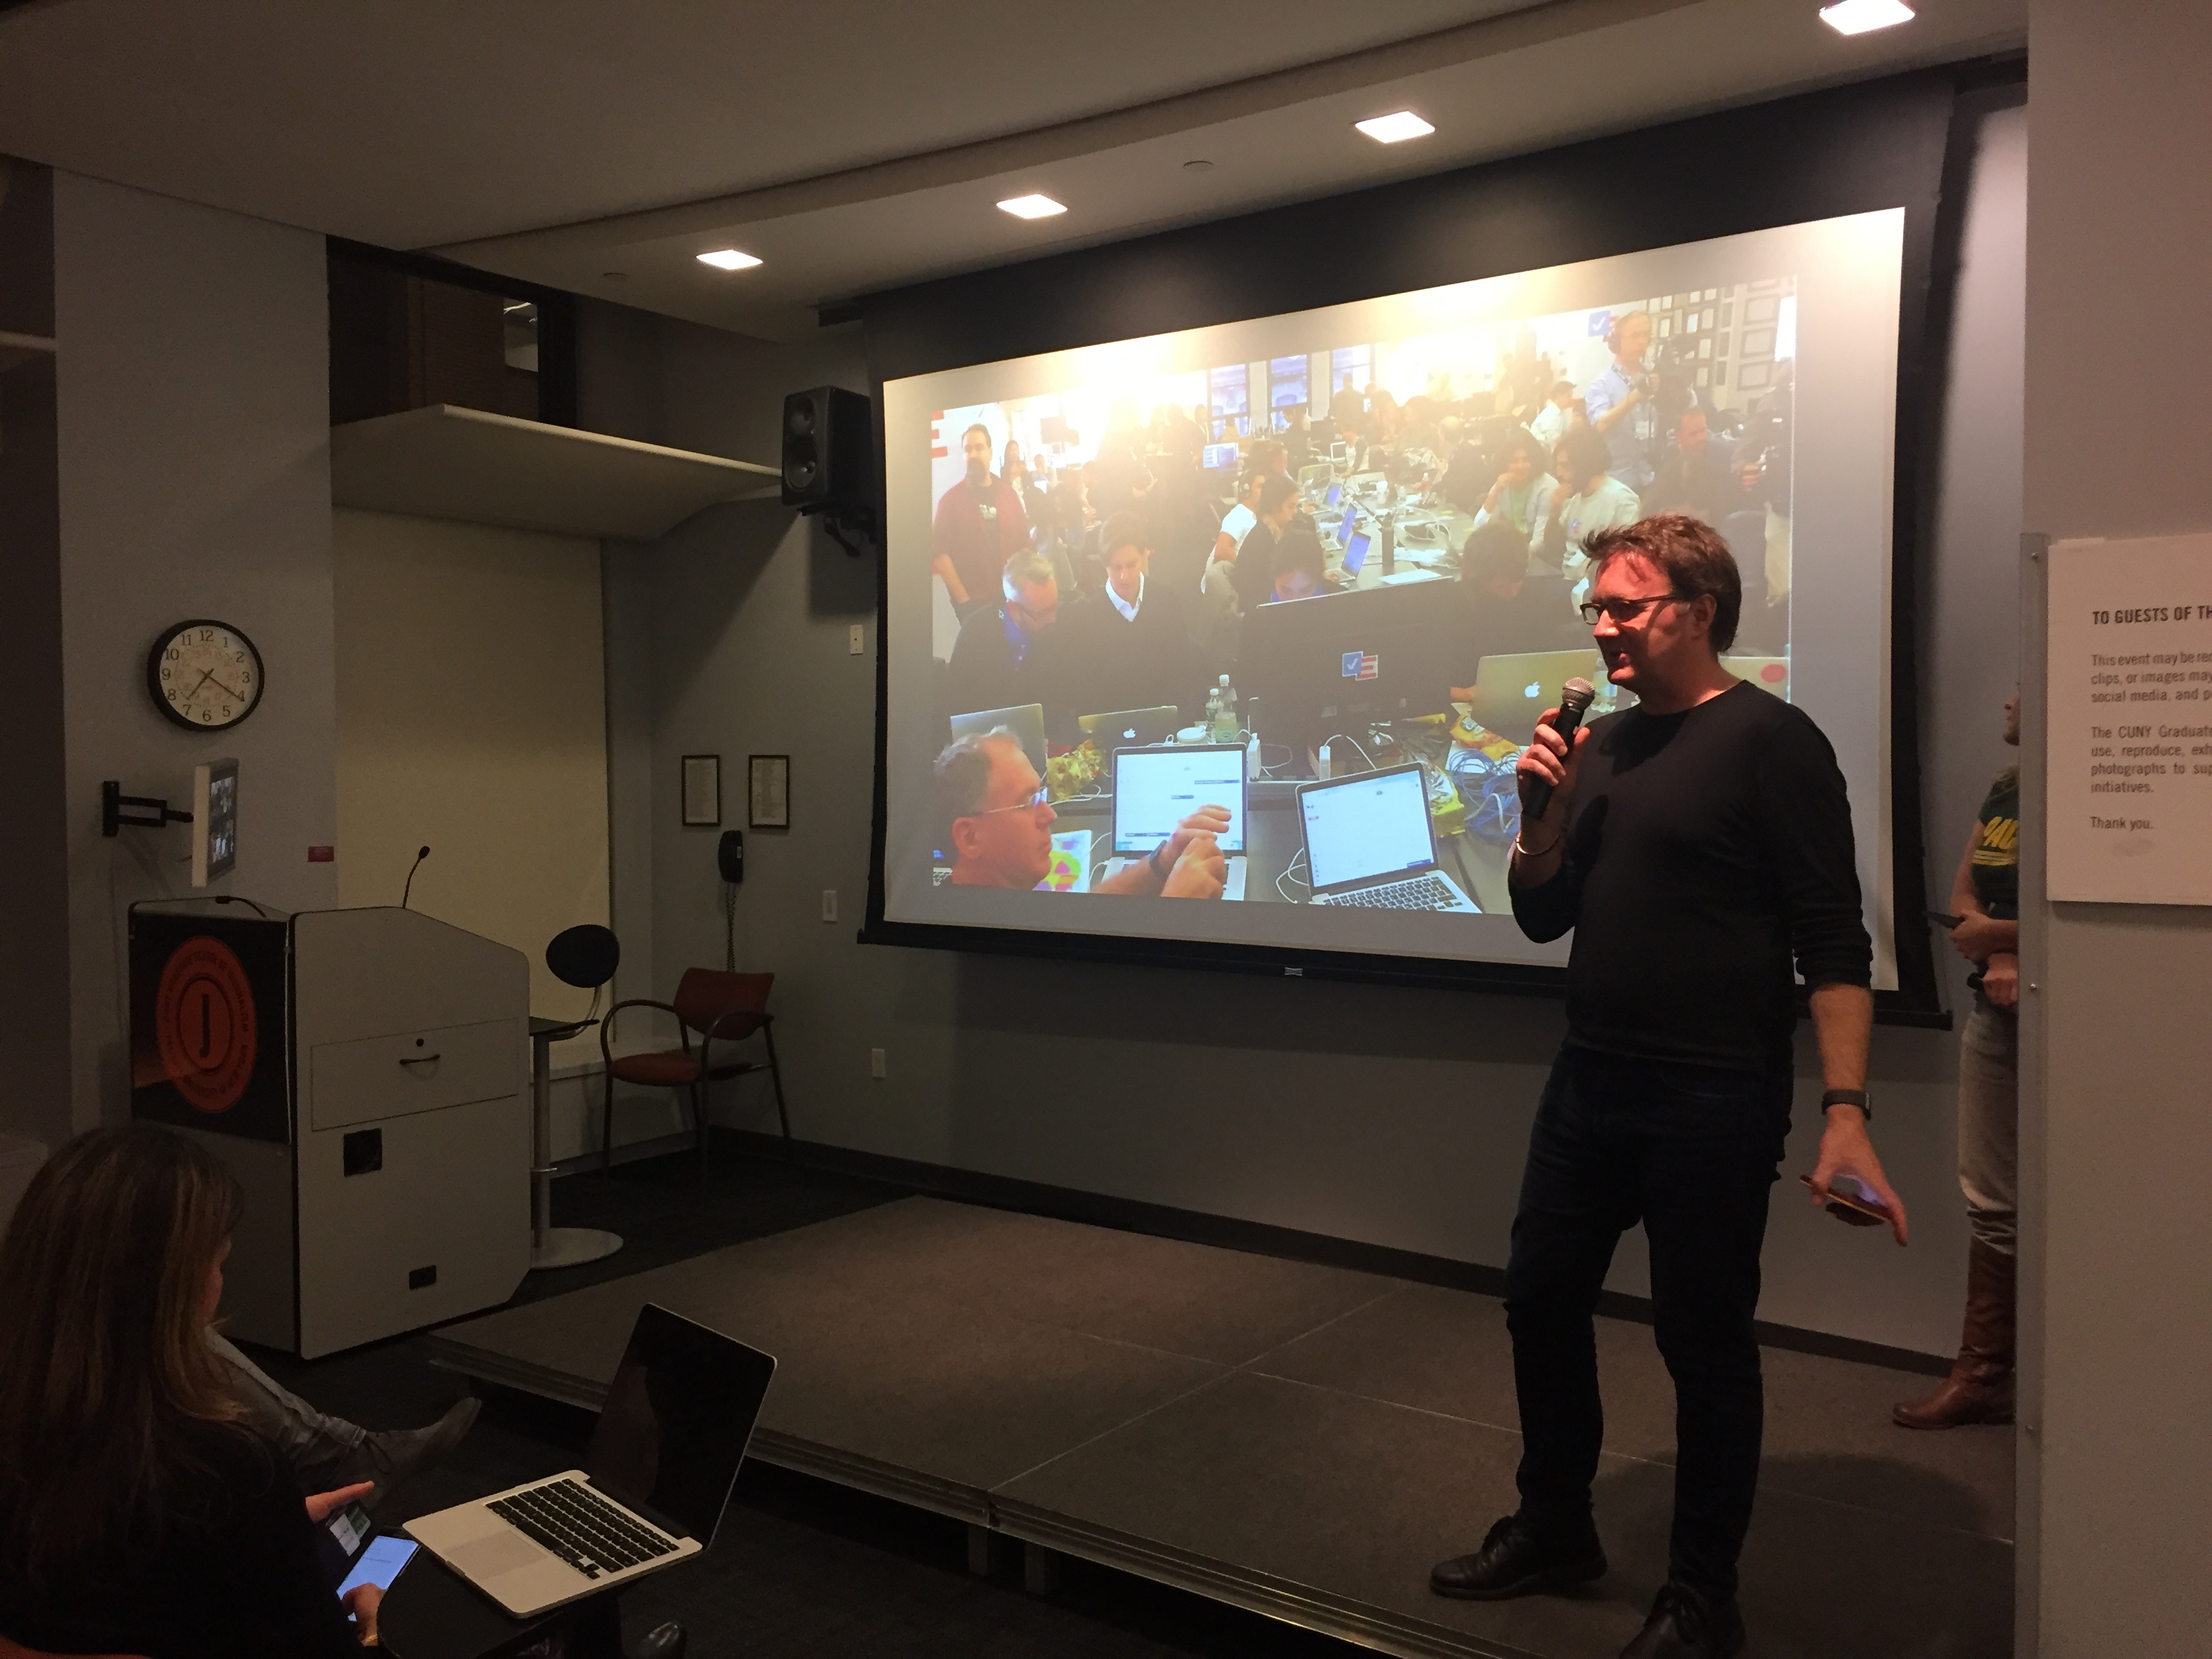 John Keefe presents Electionland to an audience at CUNY's Graduate School of Journalism on Monday night.